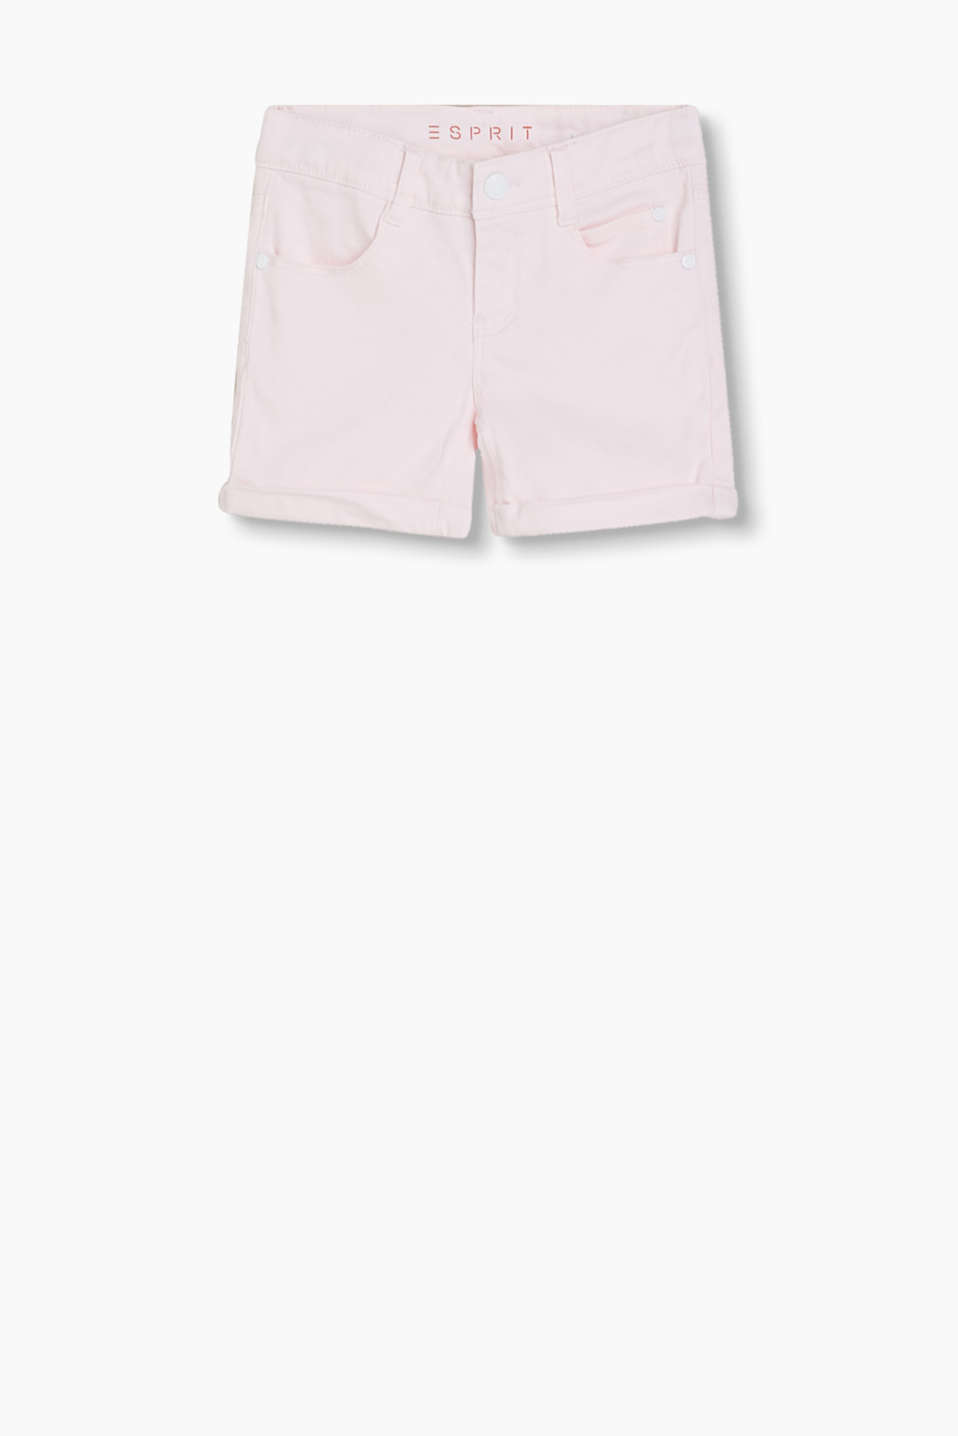 Cotton satin shorts with added stretch, adjustable waistband in a five-pocket style